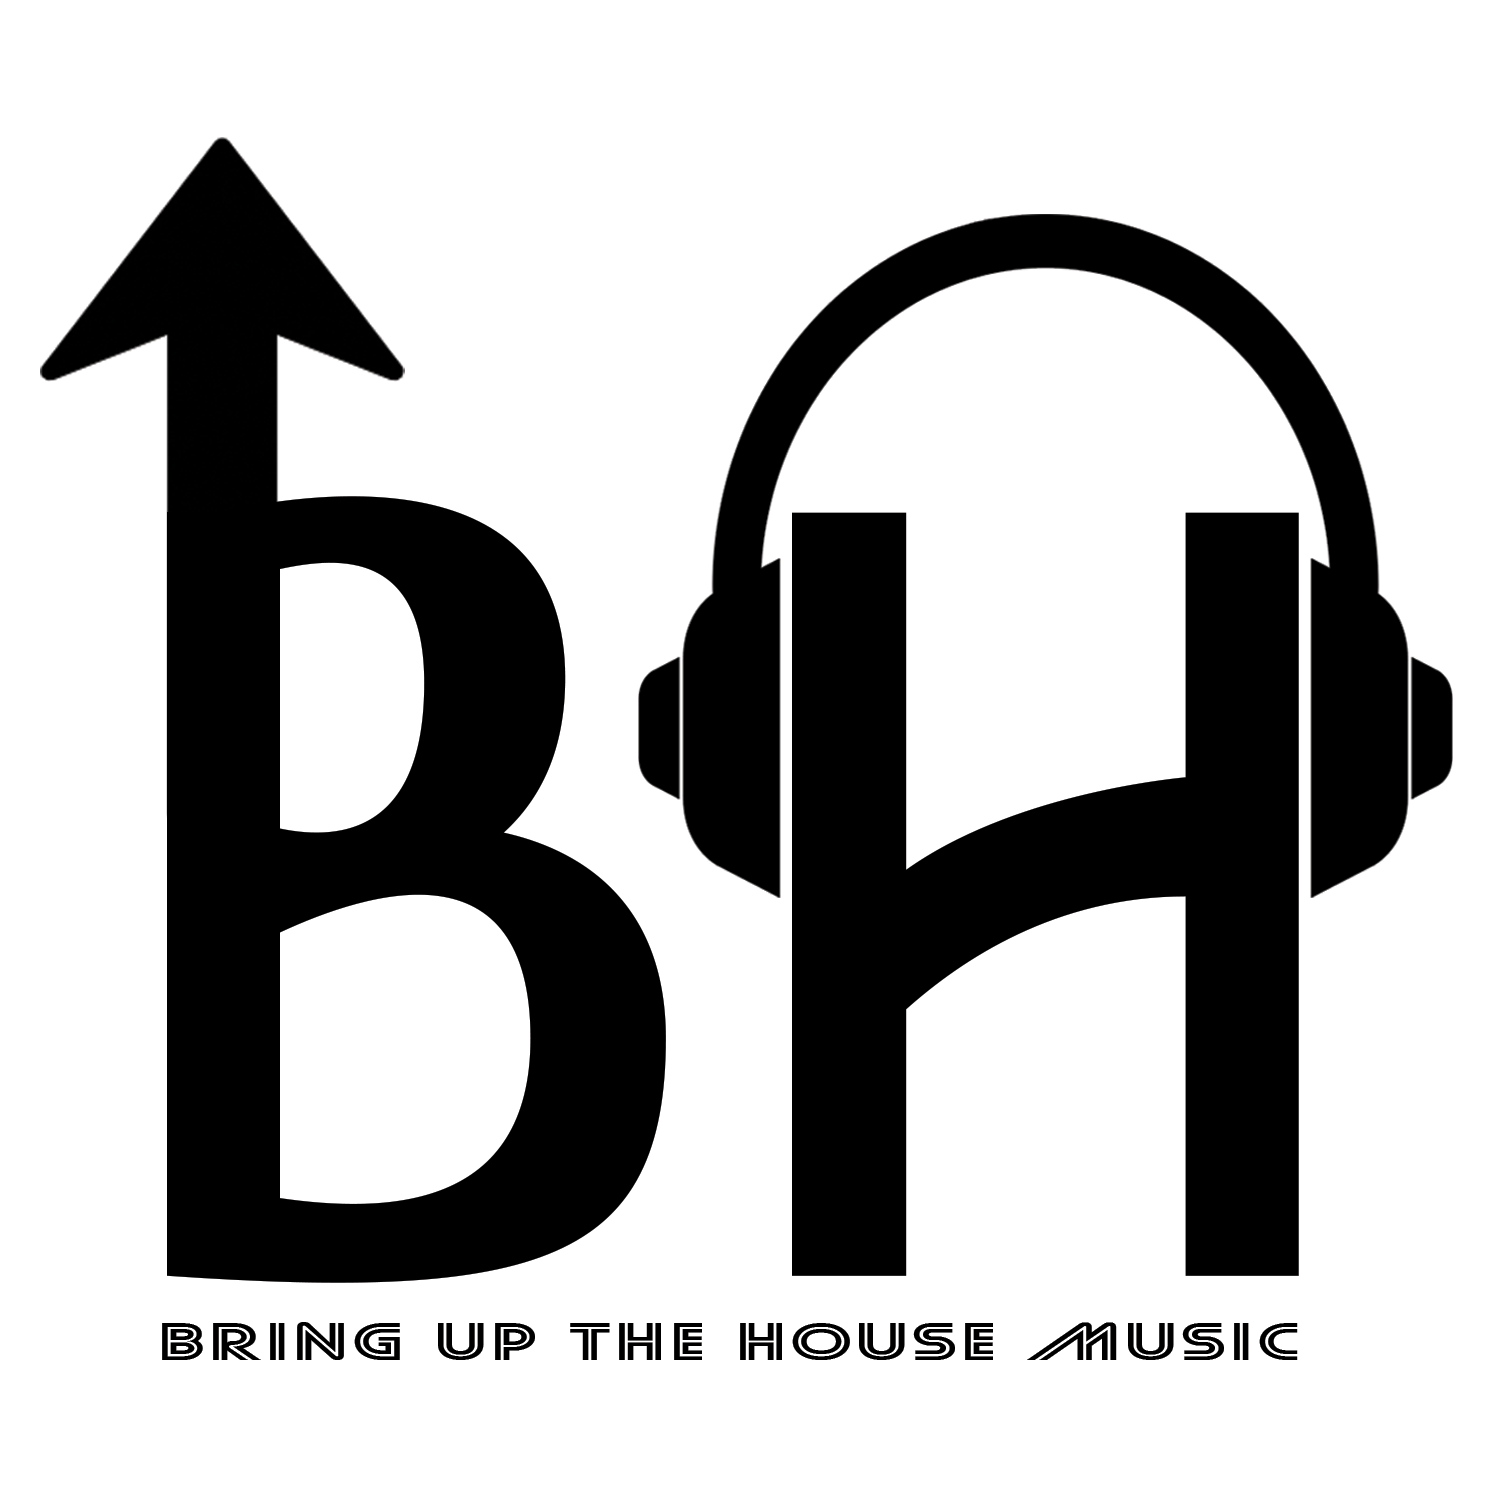 Bring up the House Music